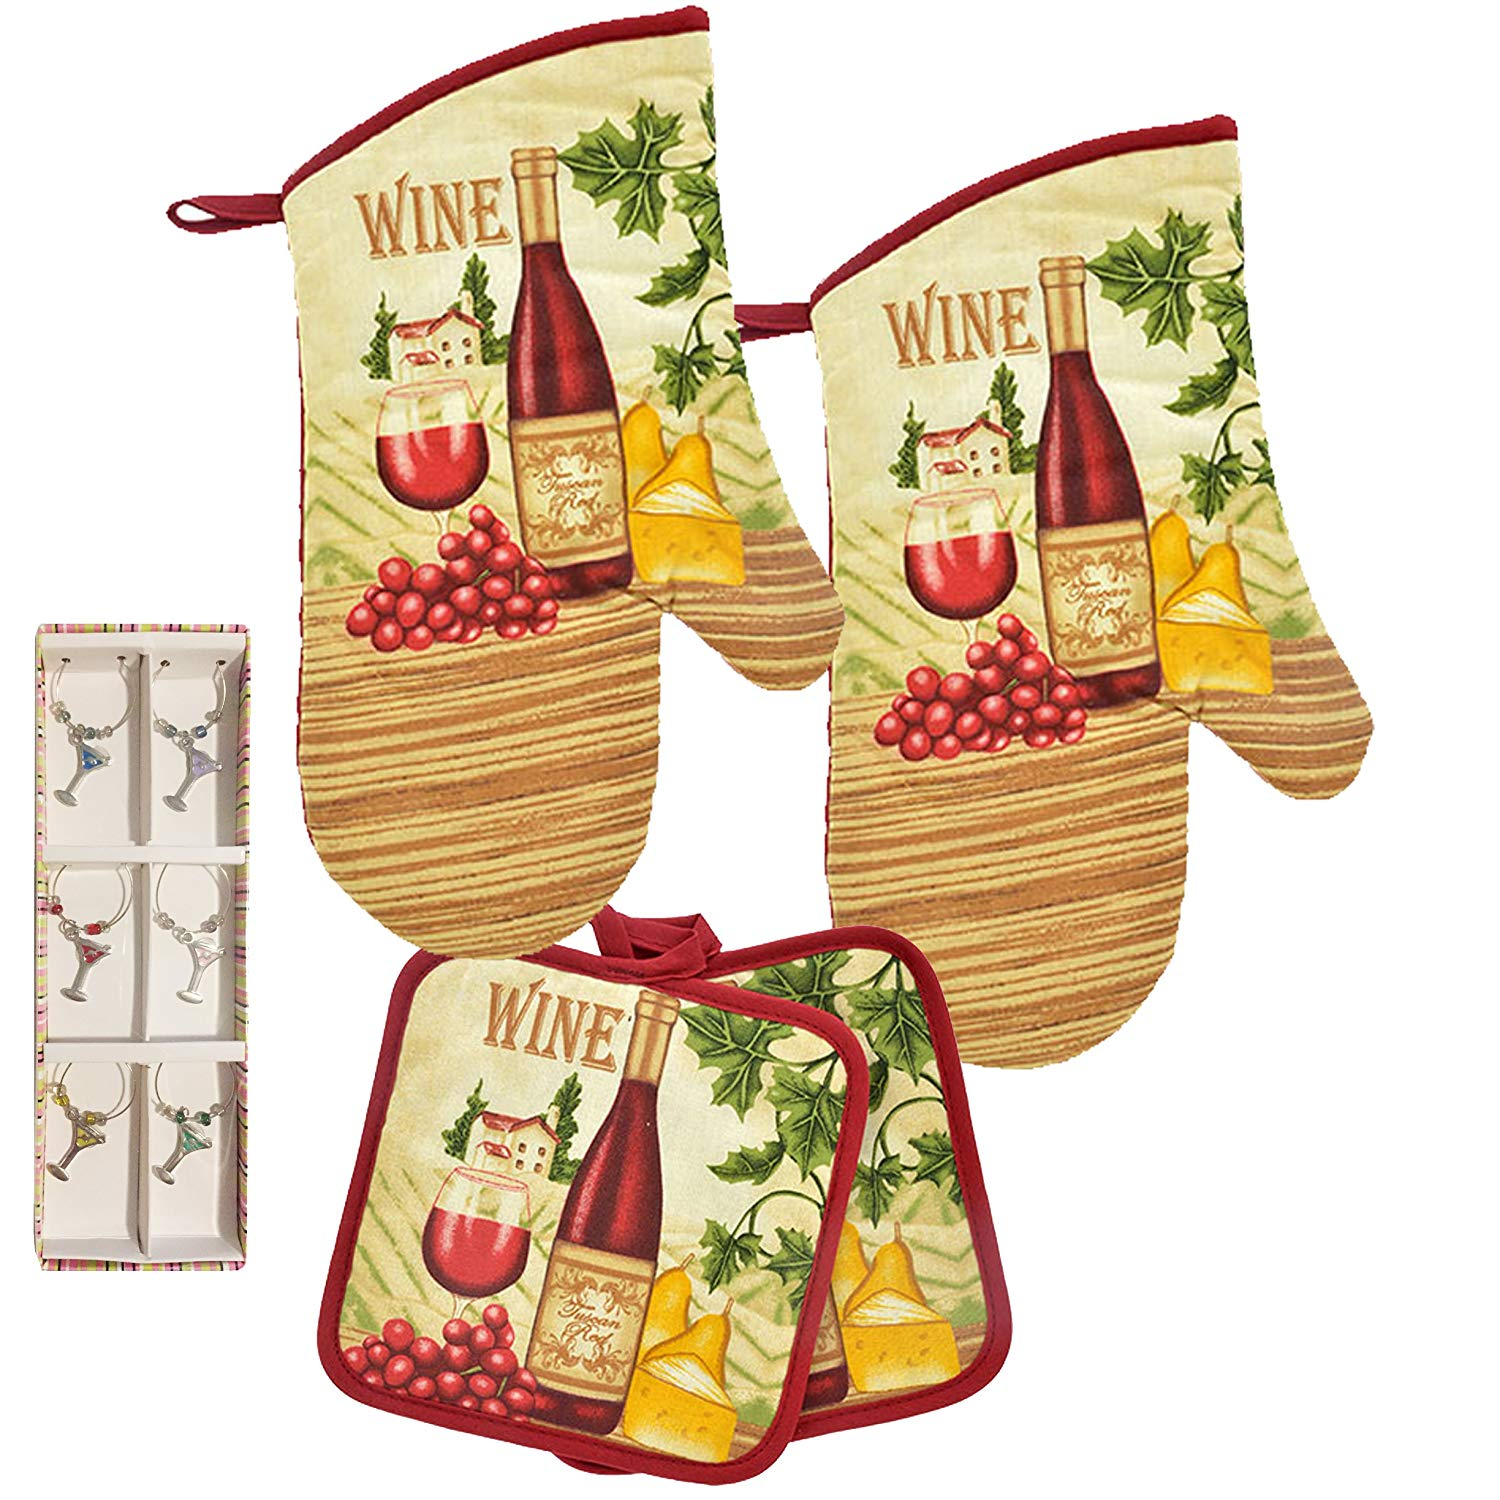 Dublin's Treasure Isle Kitchen Oven Mitt Pot Holder Set Kitchen Linens Oven Mitt Pot Holder Pack with Wine Charms (Tuscan Red)